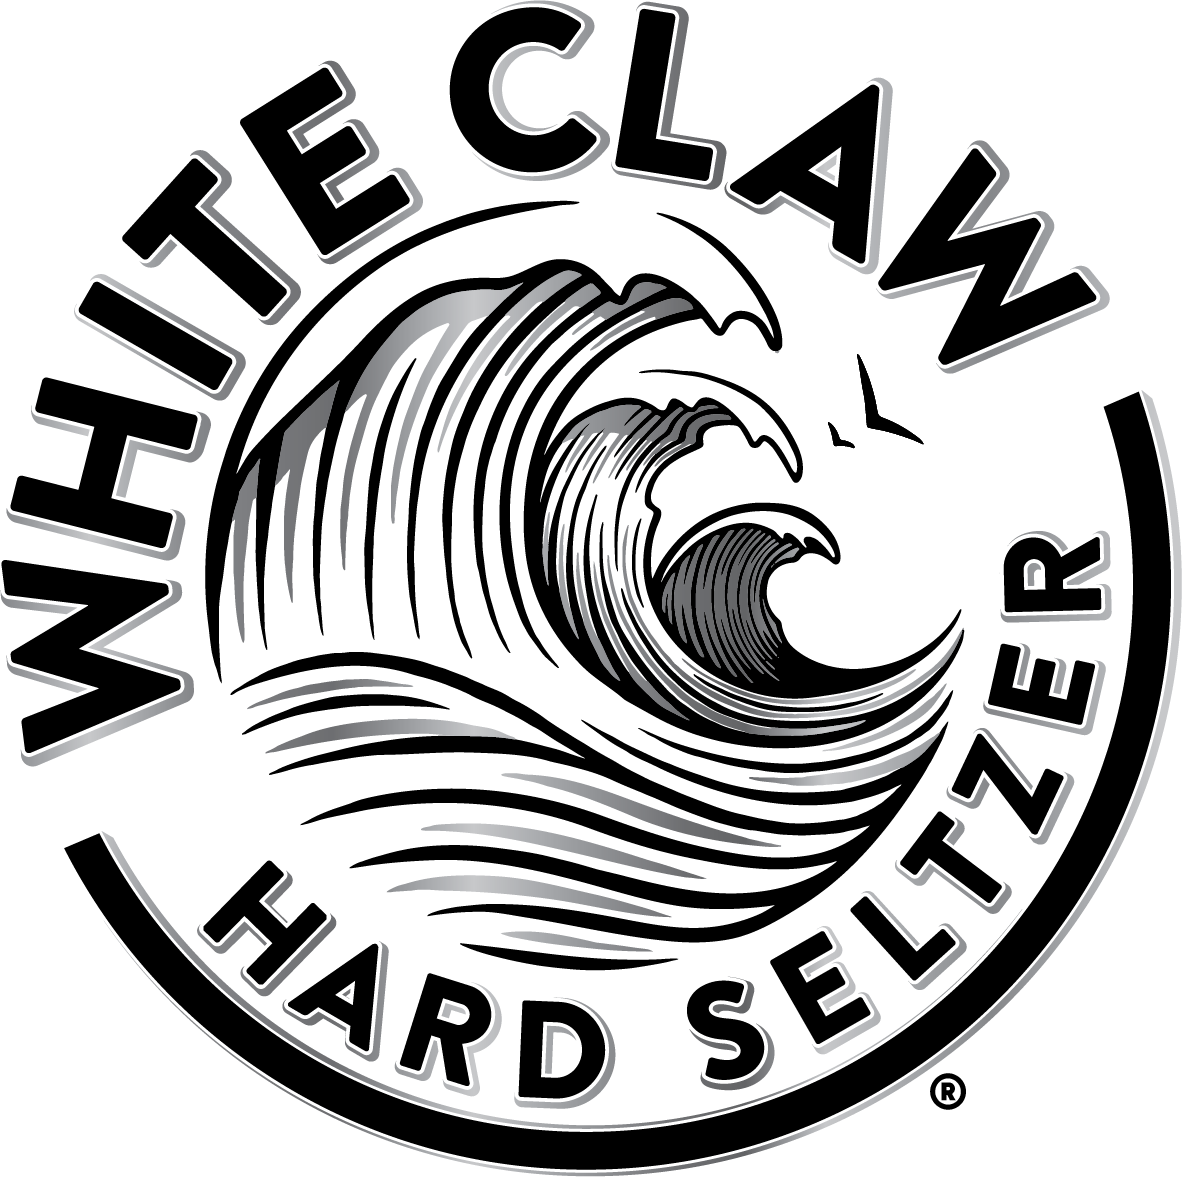 White Claw official sponsor logo